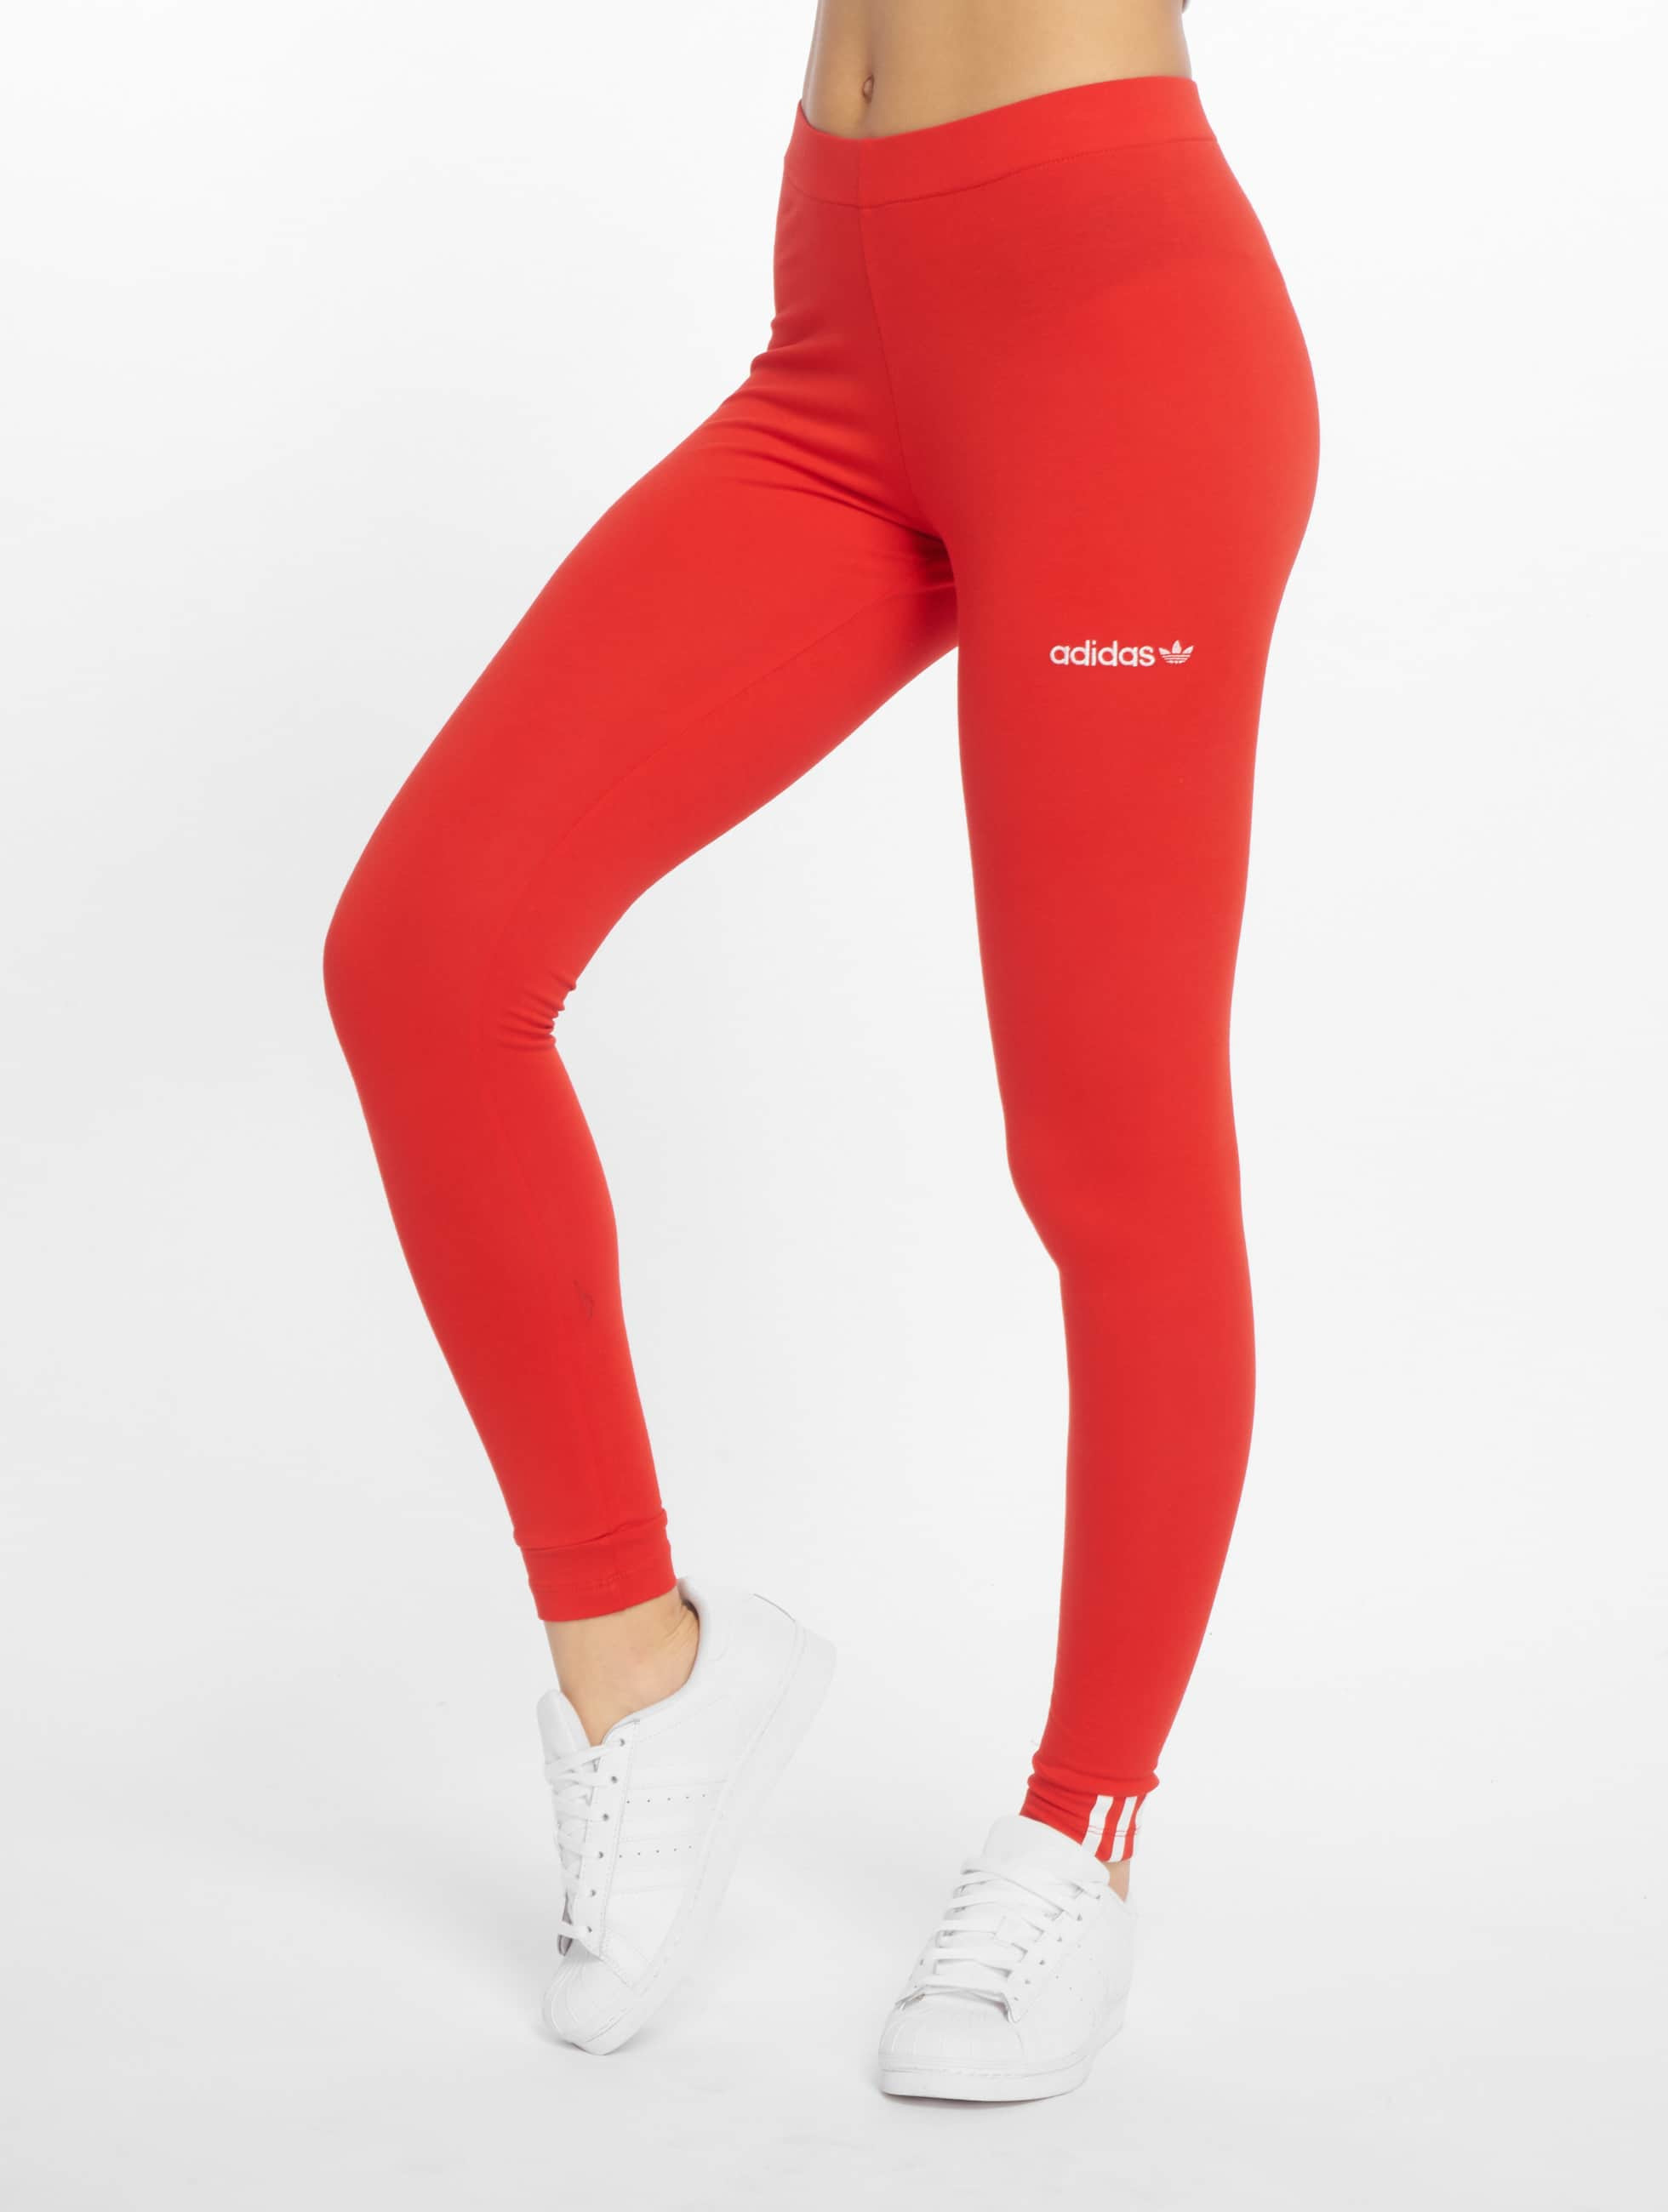 84301ae8139 adidas originals broek / Legging Coeeze in rood 599179